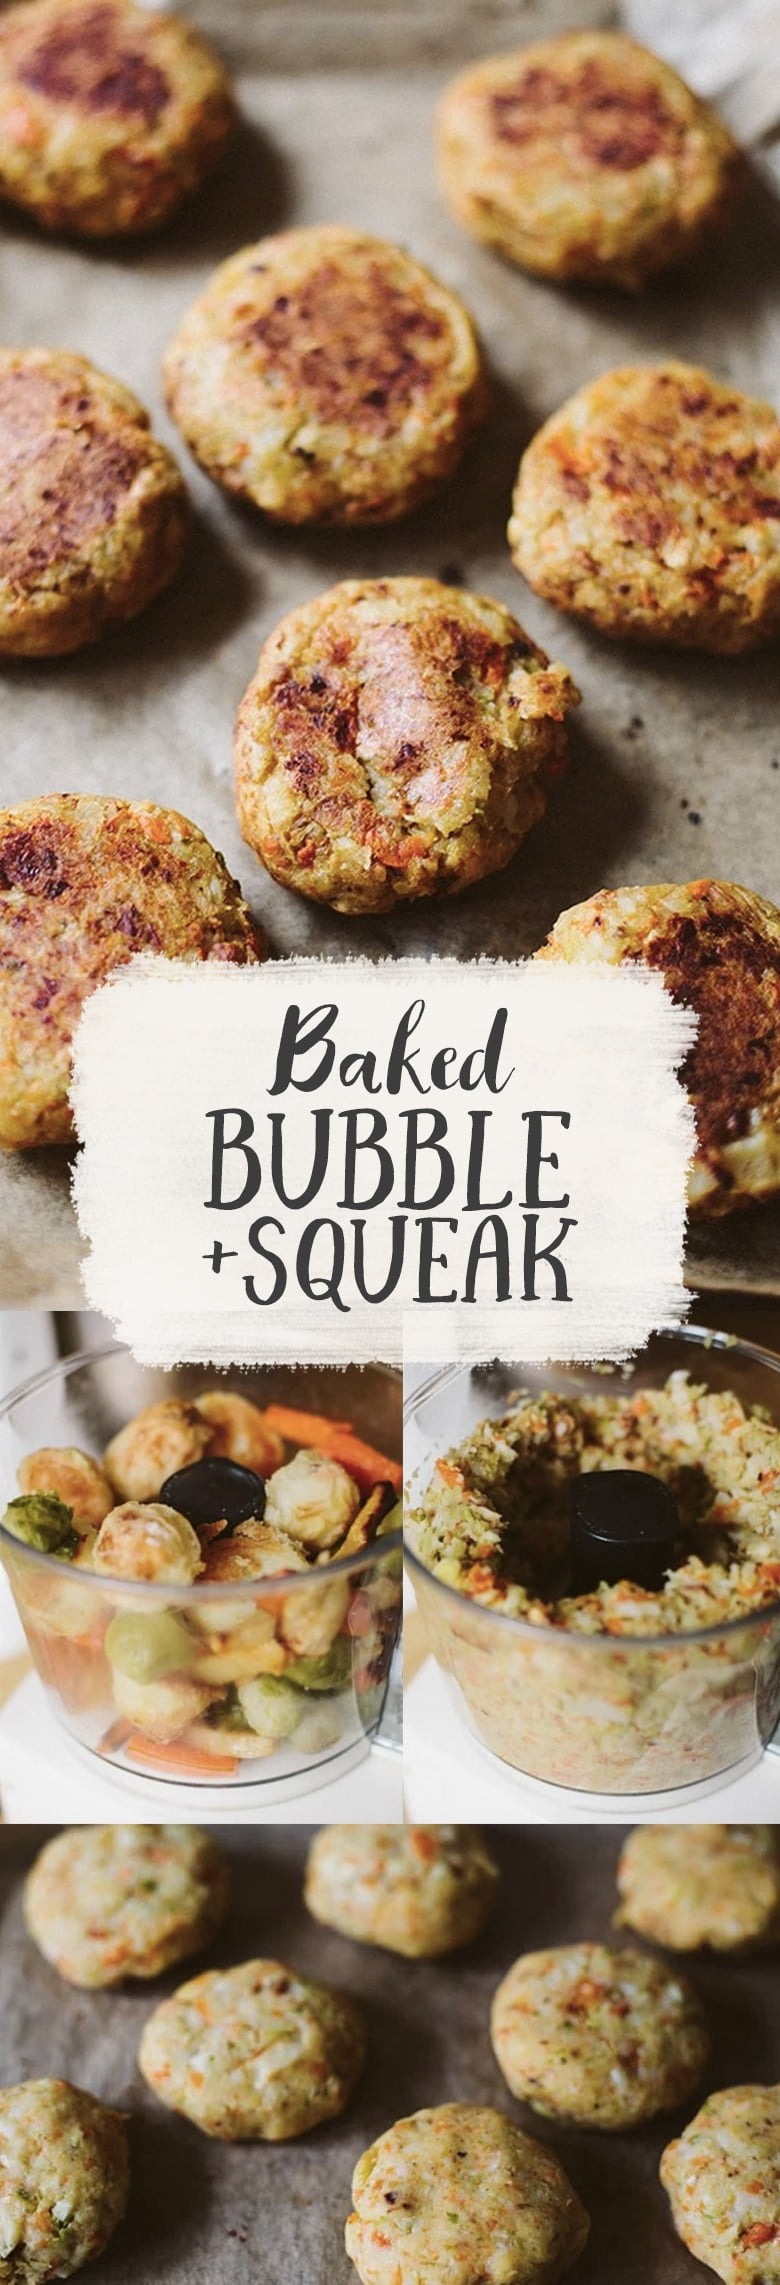 Baked Bubble & Squeak Cakes